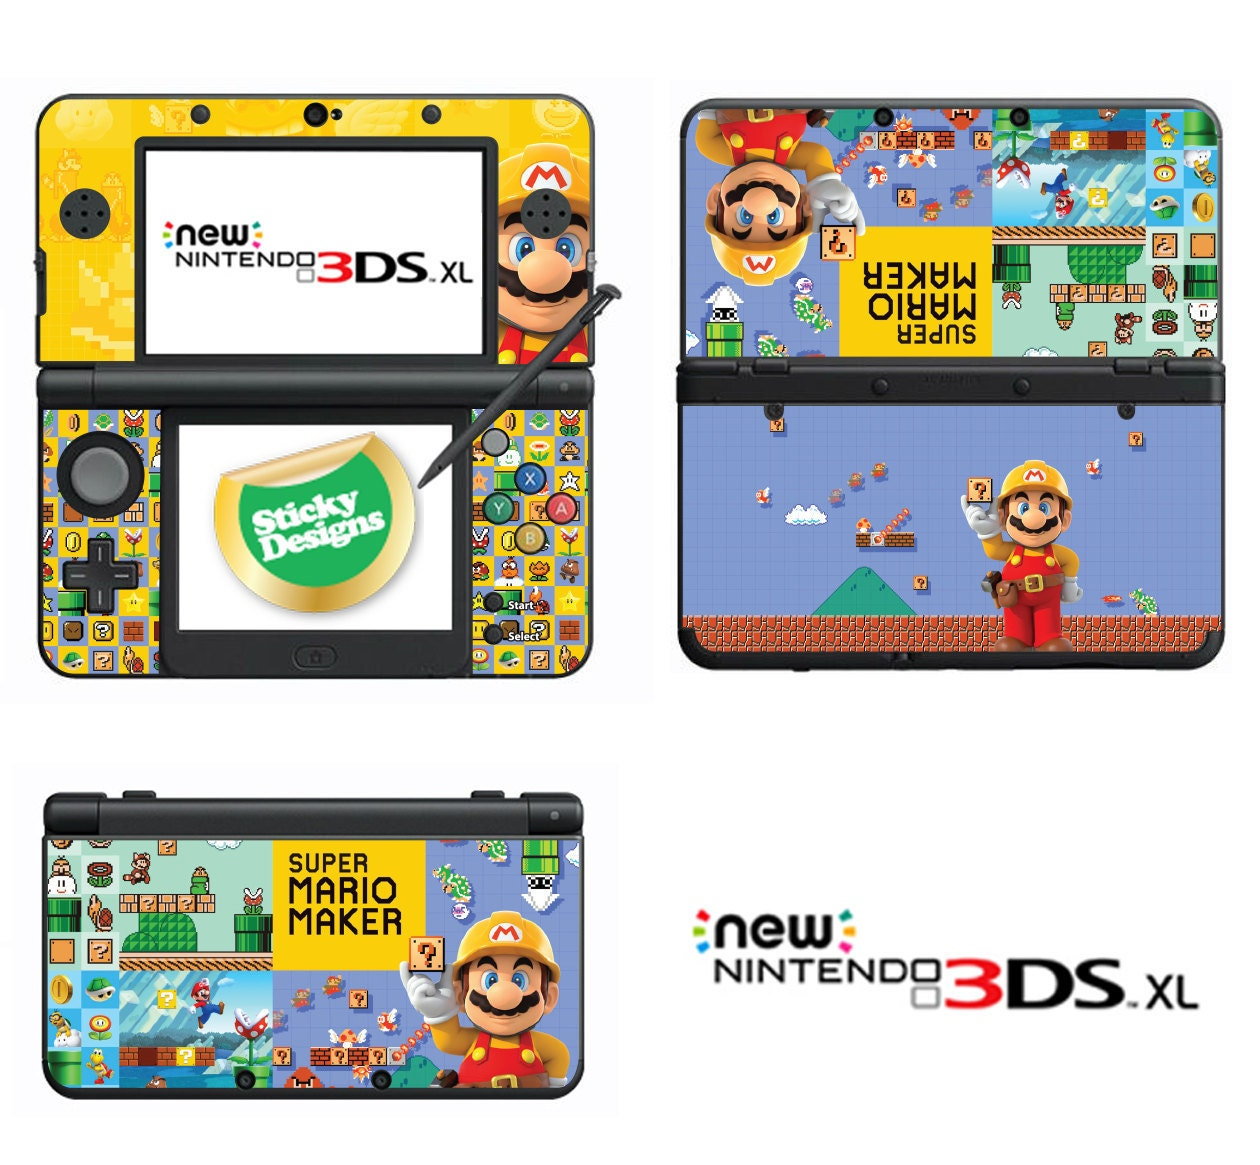 Super Mario Maker Vinyl Skin Sticker for Nintendo DS liteDSiDSi xl3DS3DS xlNew 3DS cstickNew 3DS xl cstick2DS